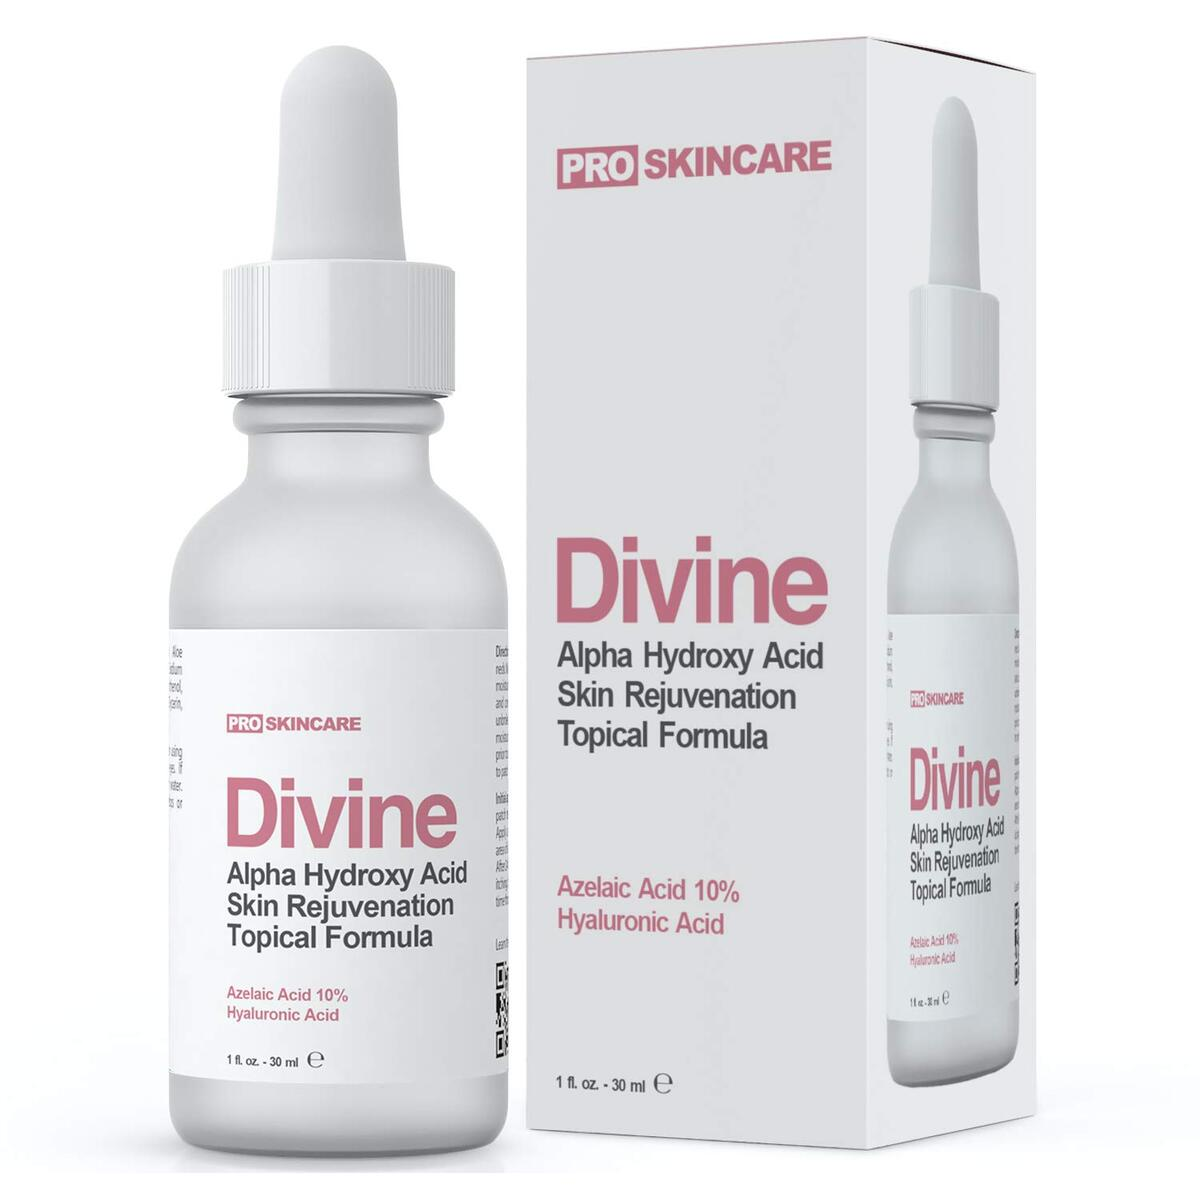 Azelaic Acid Facial Serum with Niacinamide and Hyaluronic Acid - Natural & Organic Anti Wrinkle Reducer, Dark Circle, Fine Line & Sun Damage Corrector - Boost Collagen, Treat Cystic Acne Scars, Rosacea Treatment for Face